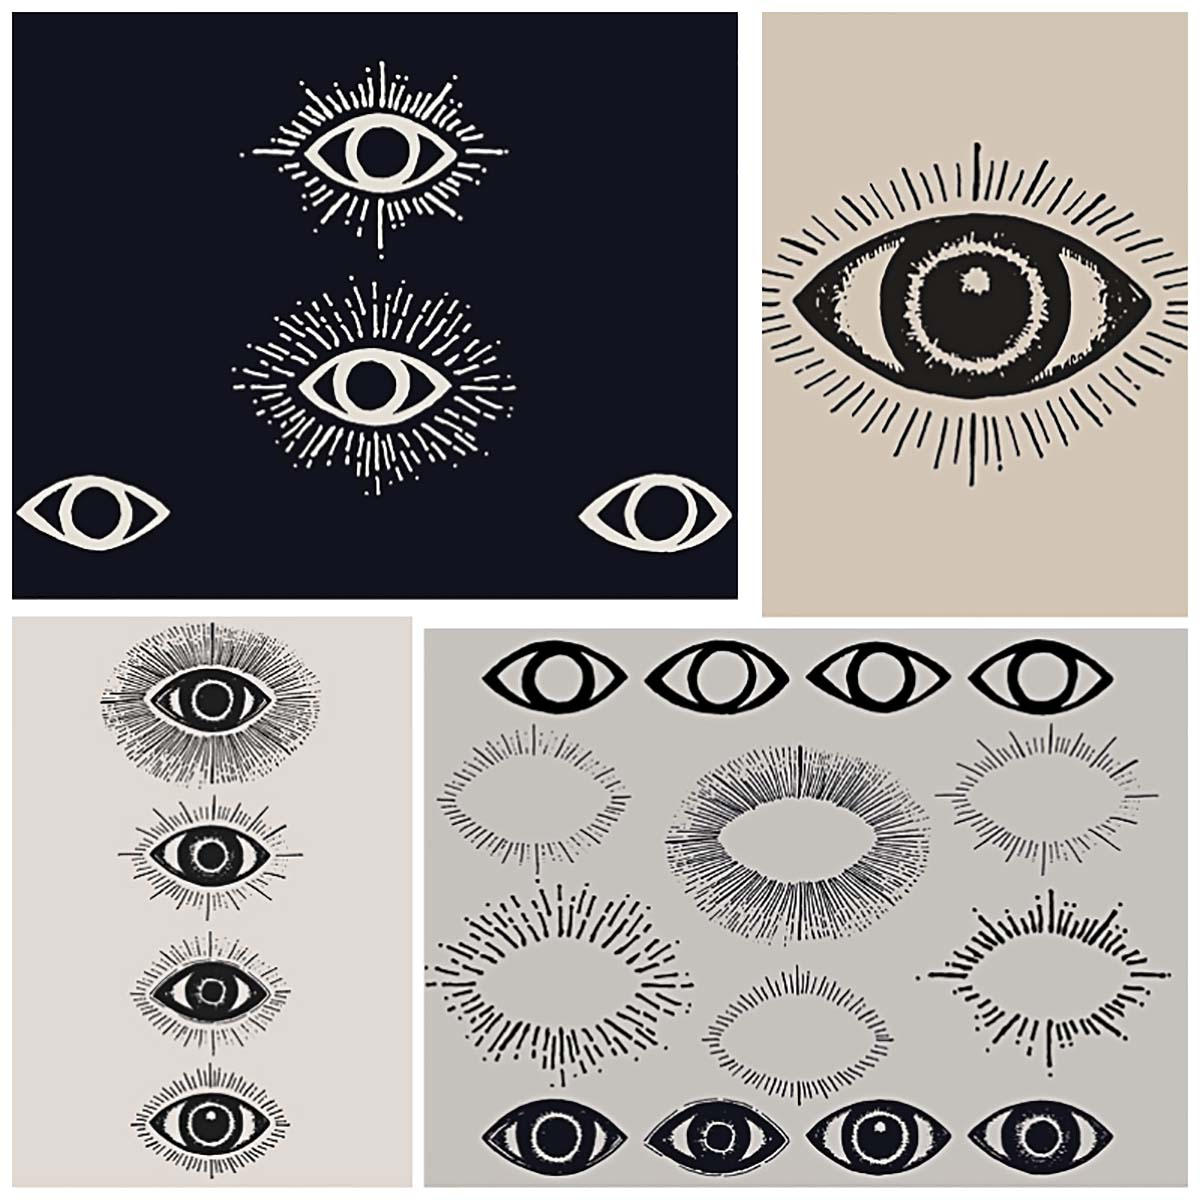 All seeing eyes hand drawn illustrations